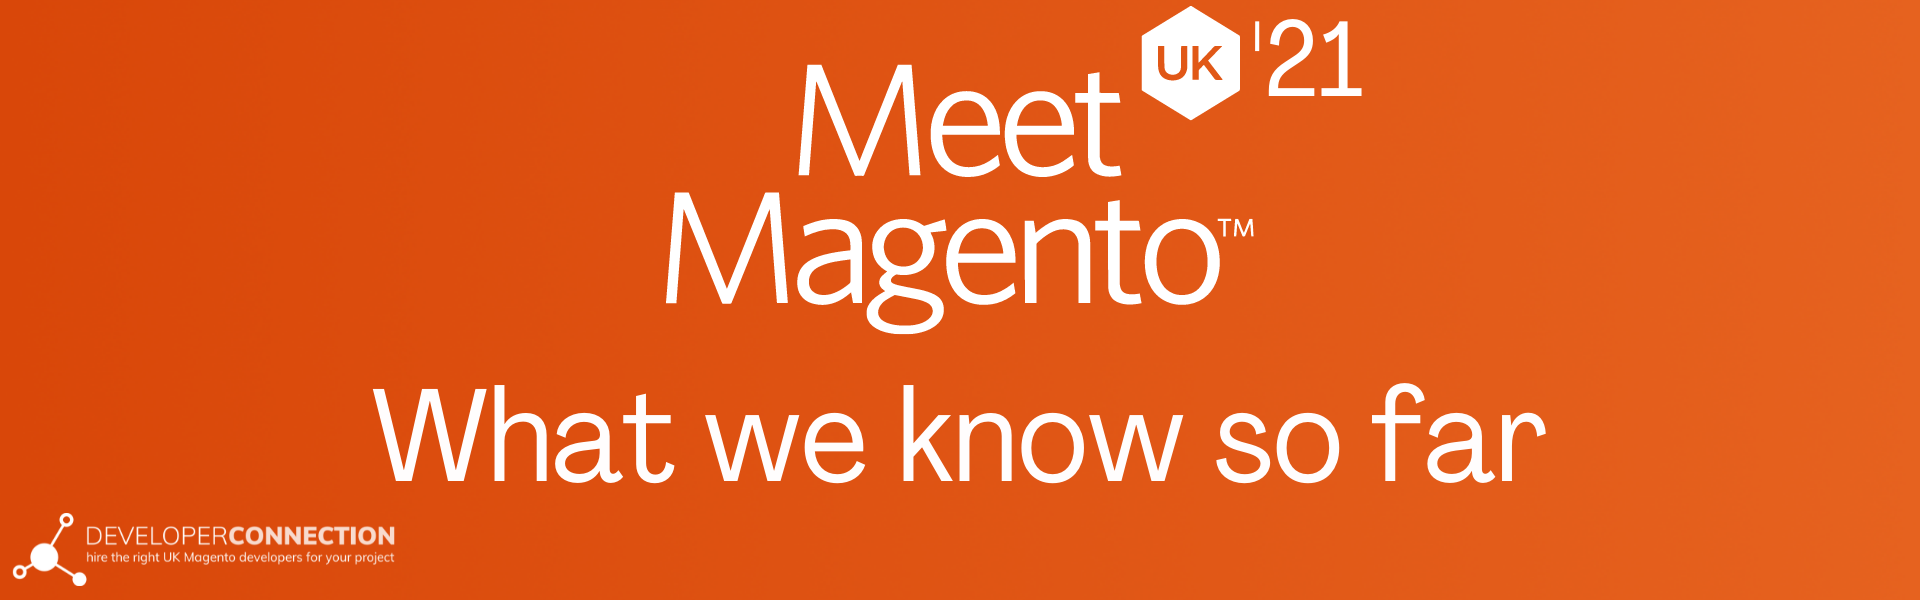 Meet Magento UK 2021 - What we know so far